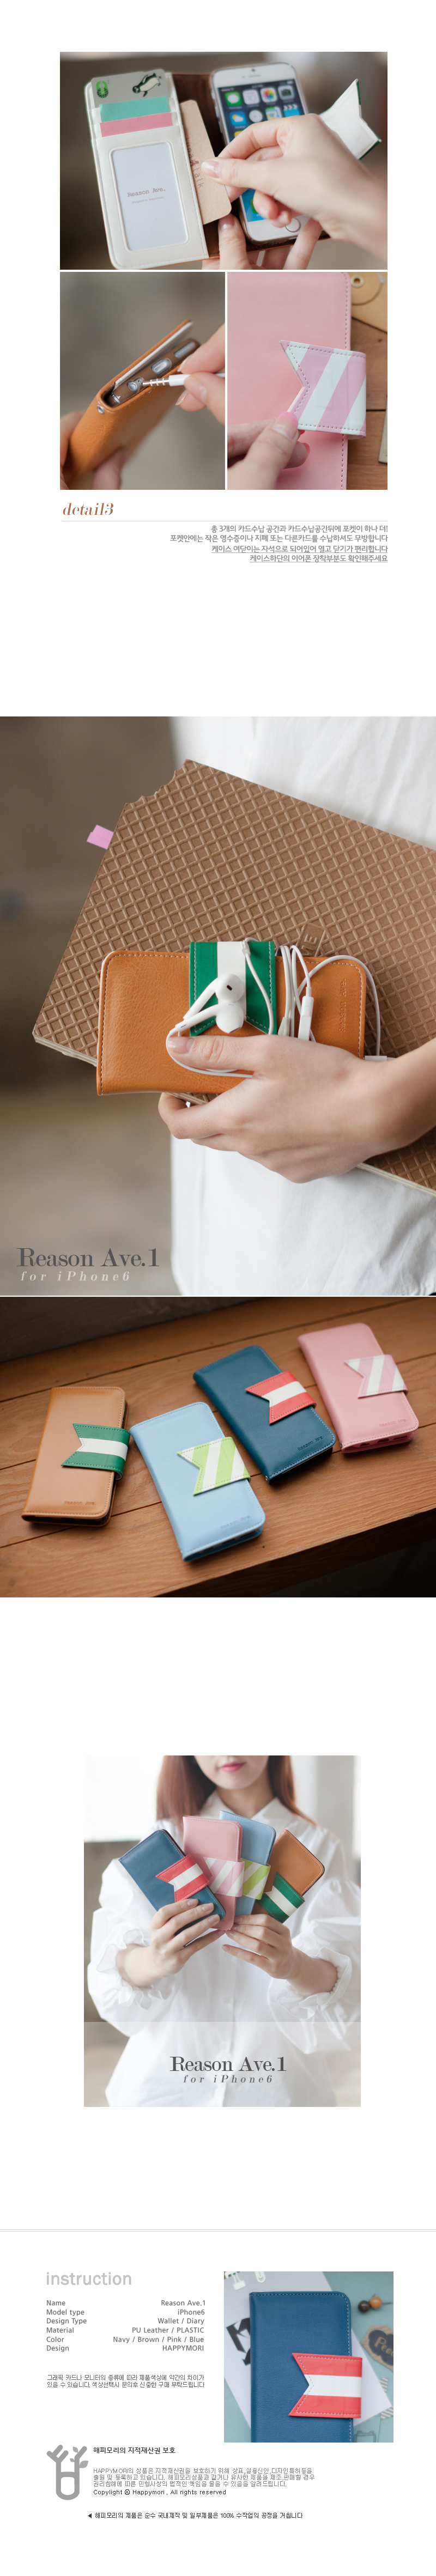 [HAPPYMORI]Faux Leather Case _Reason Ave.1 / wallet case / 4color (iPhone6,iPhone6Plus,Galaxy Note4,Galaxy Note3,Galaxy Note2,Galaxy S5,Galaxy S4,Galaxy S3)